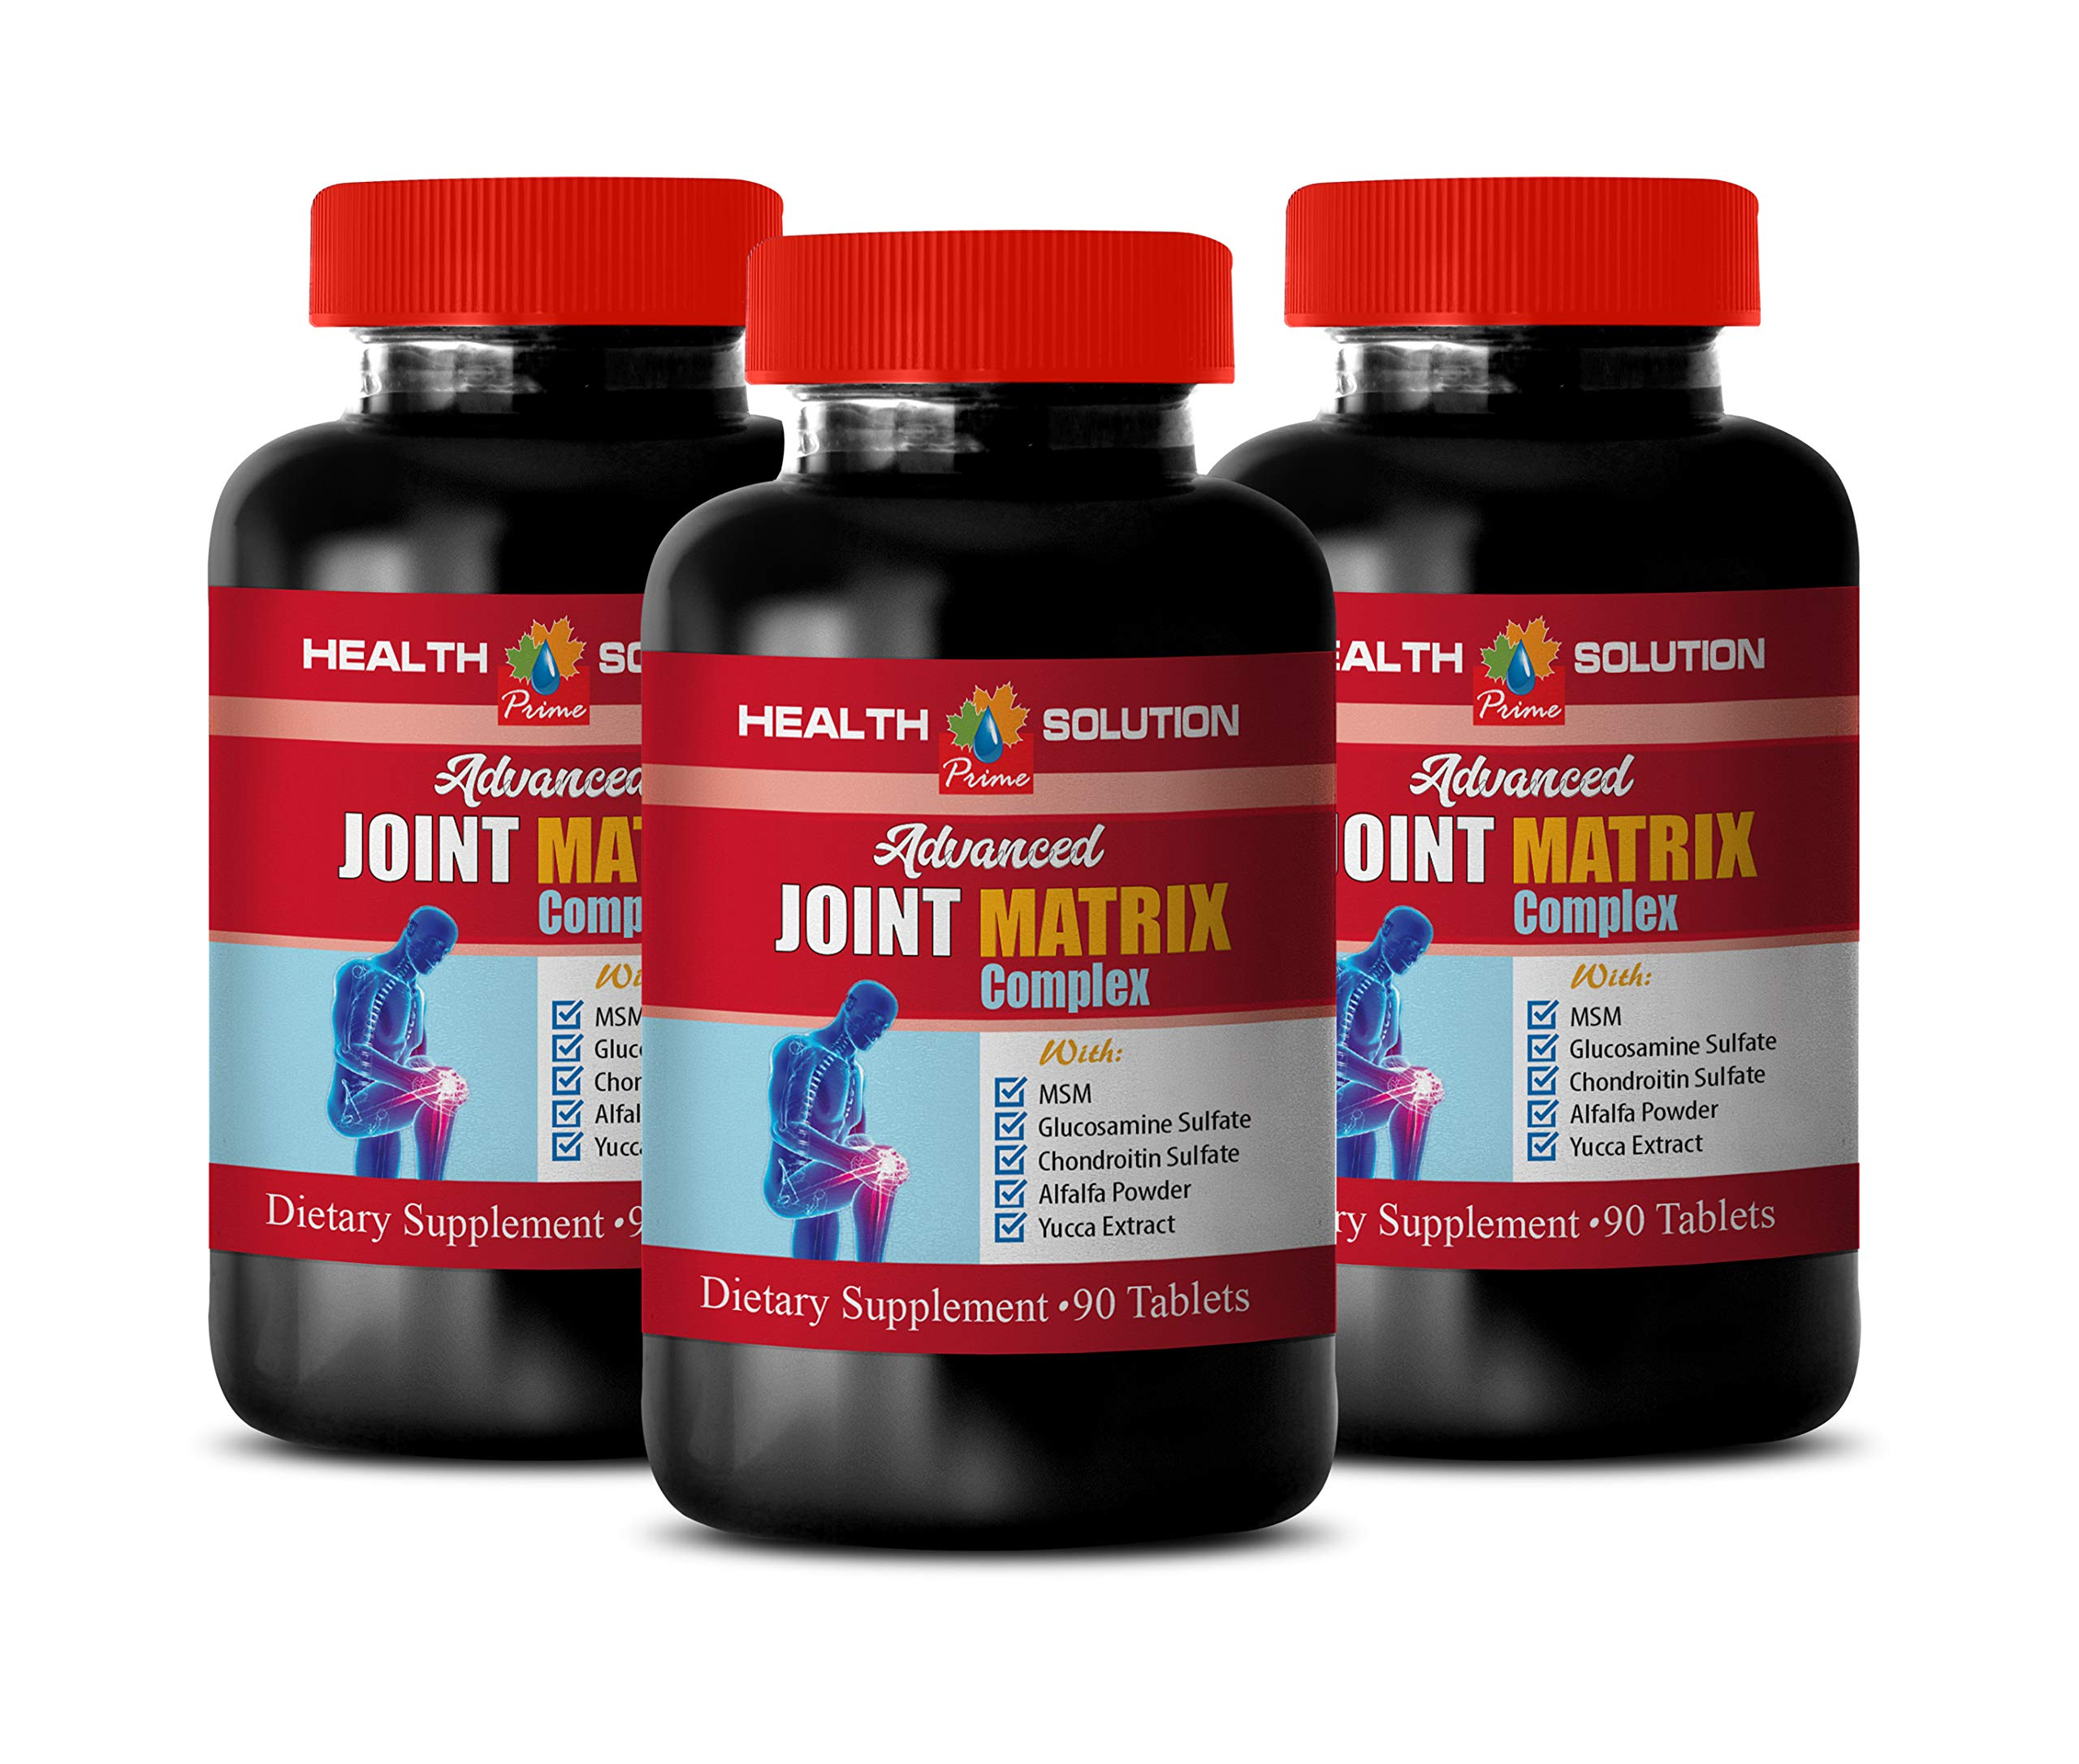 Joint Supplements for Men - Advanced Joint Matrix Complex - glucosamine Capsules for Adults - 3 Bottles 270 Tablets by Health Solution Prime